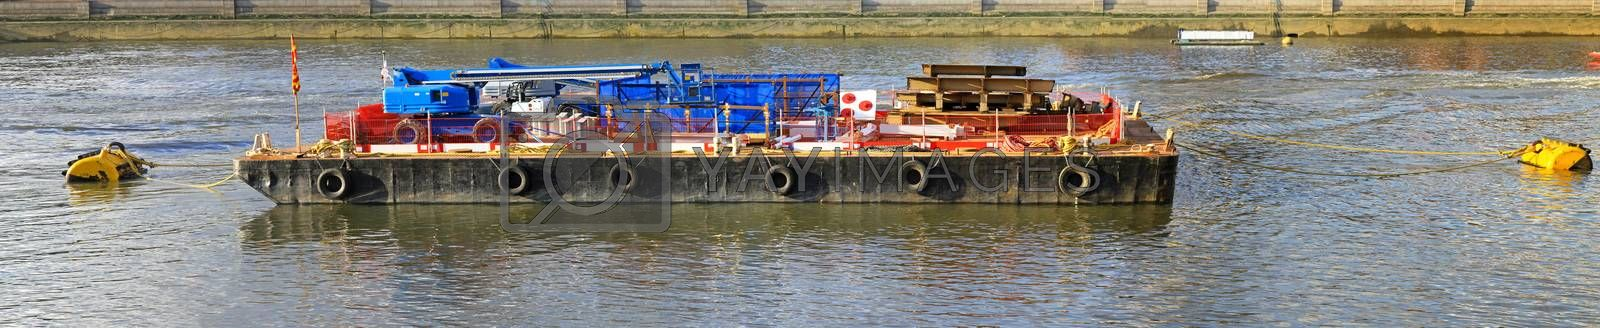 Barge with construction tools on Thames river